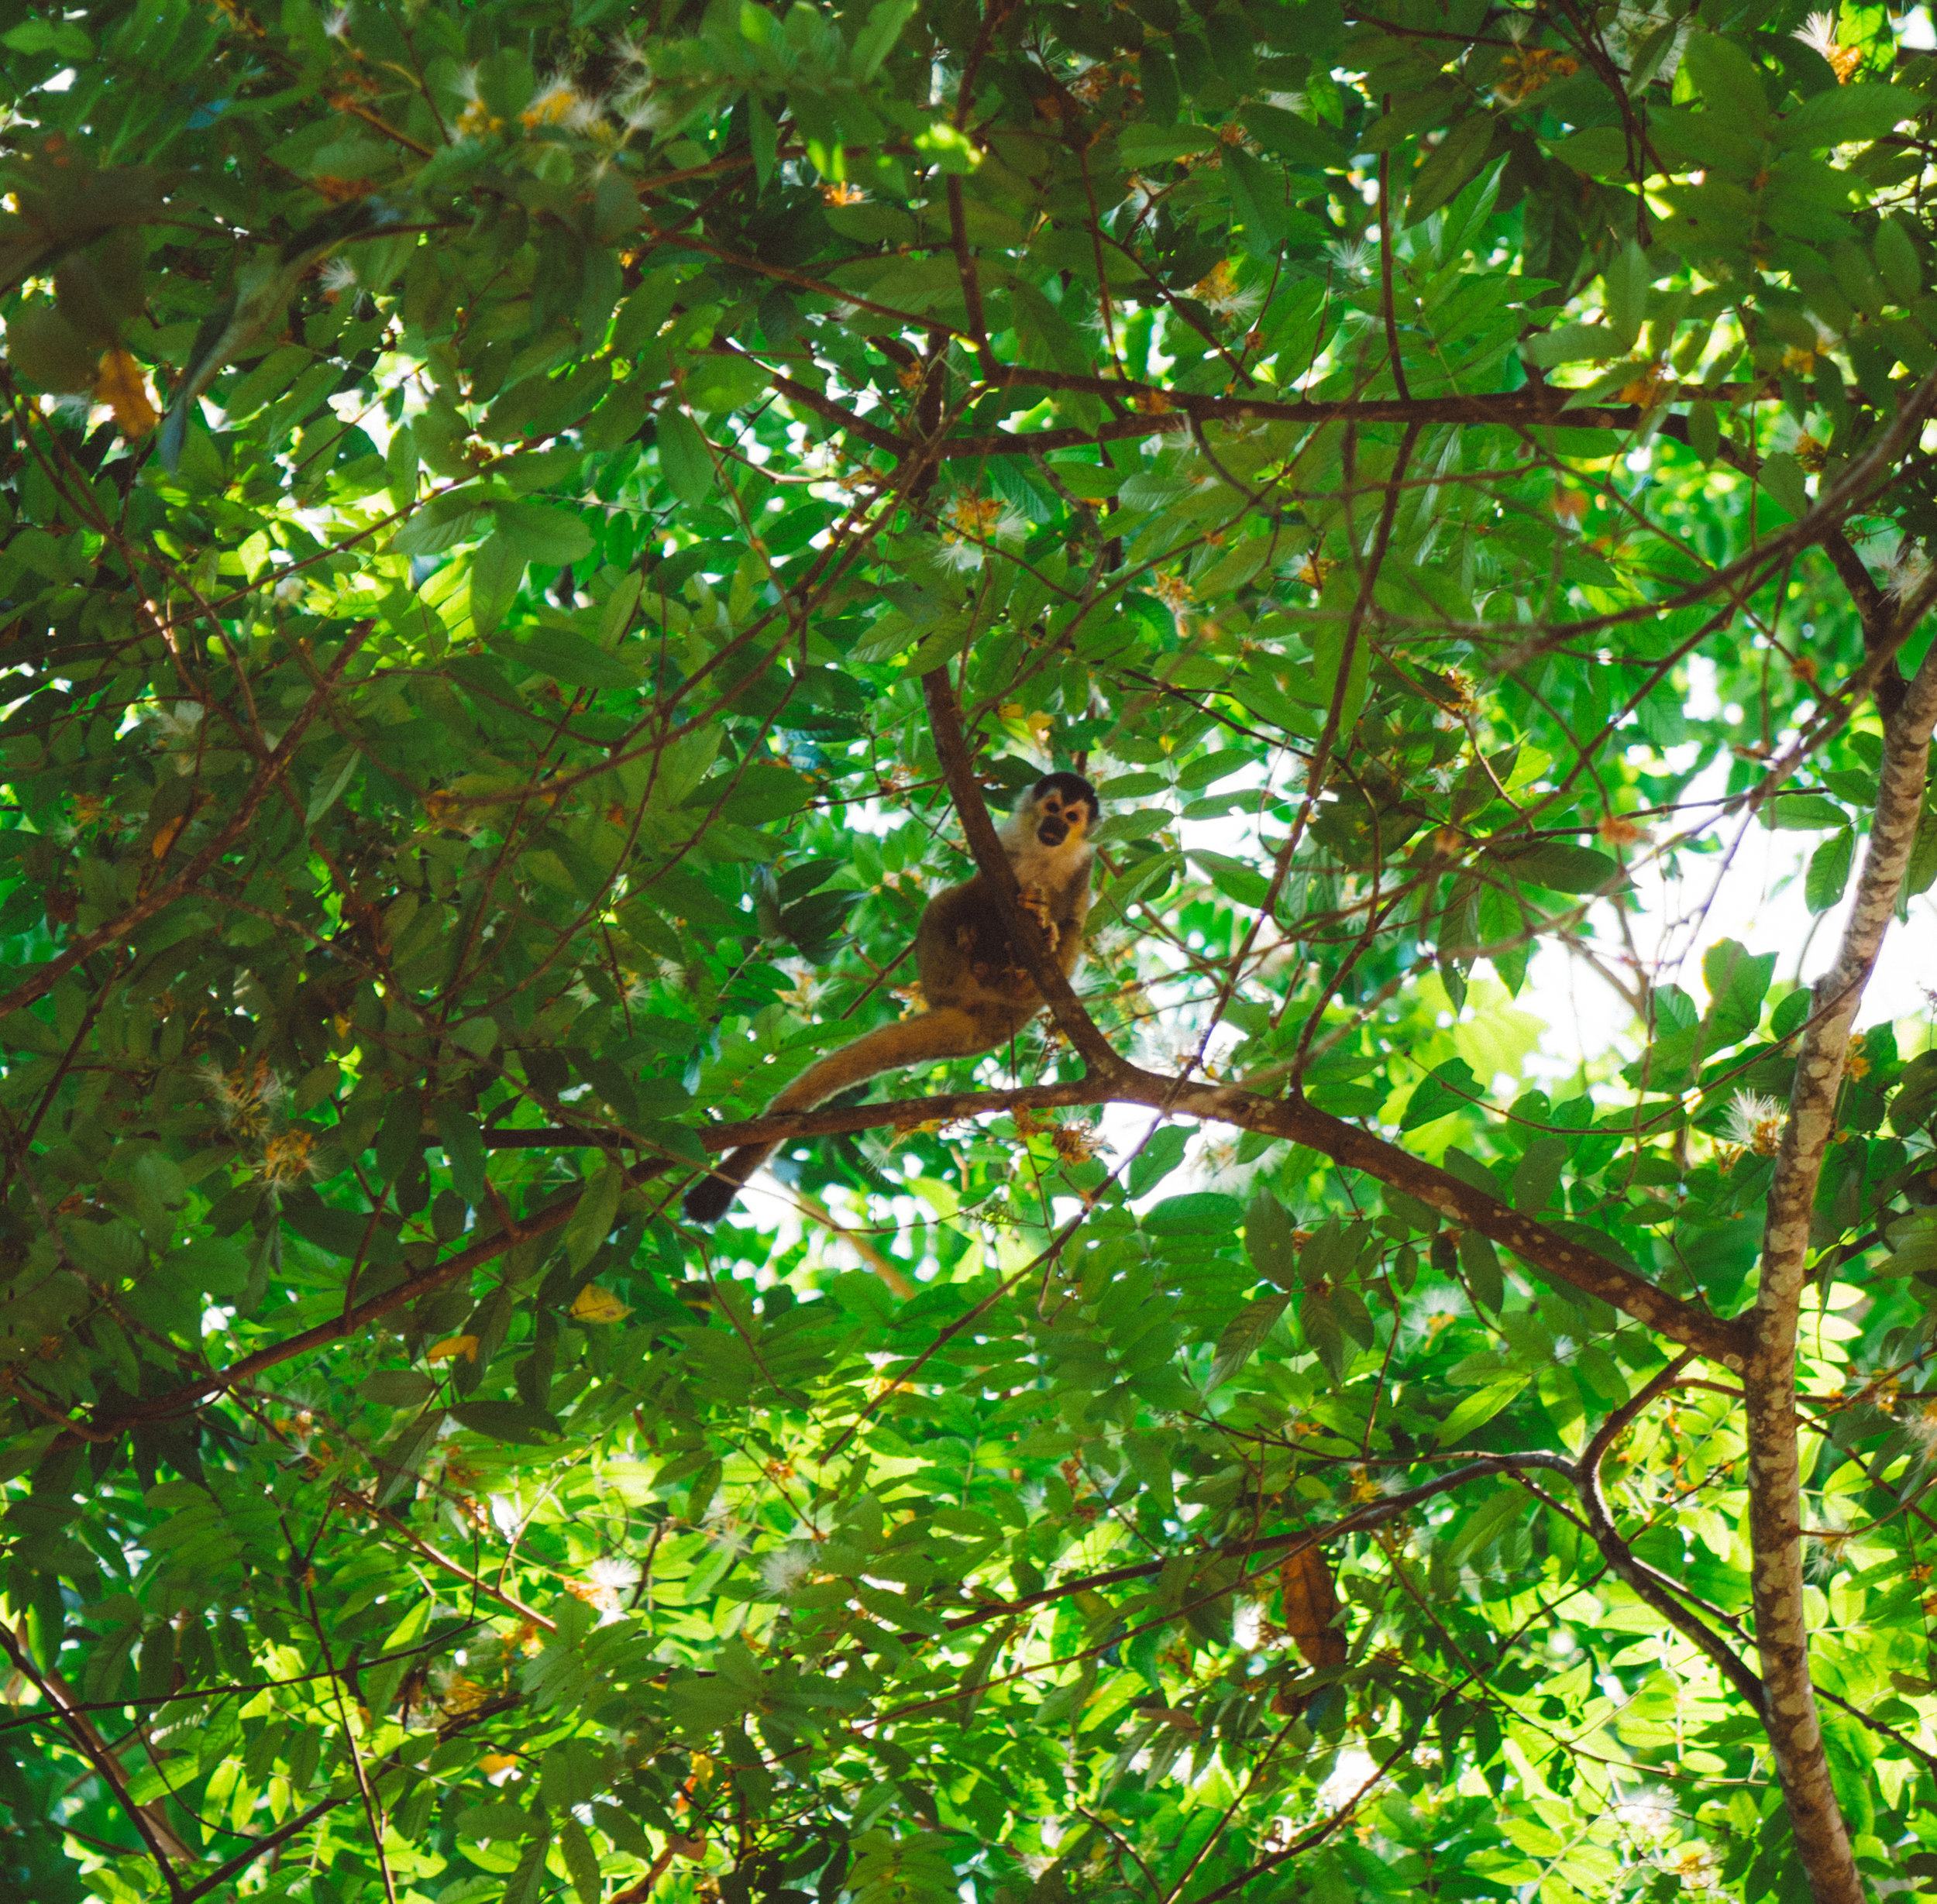 A Squirrel Monkey taking a look as his troop jumped around above us.